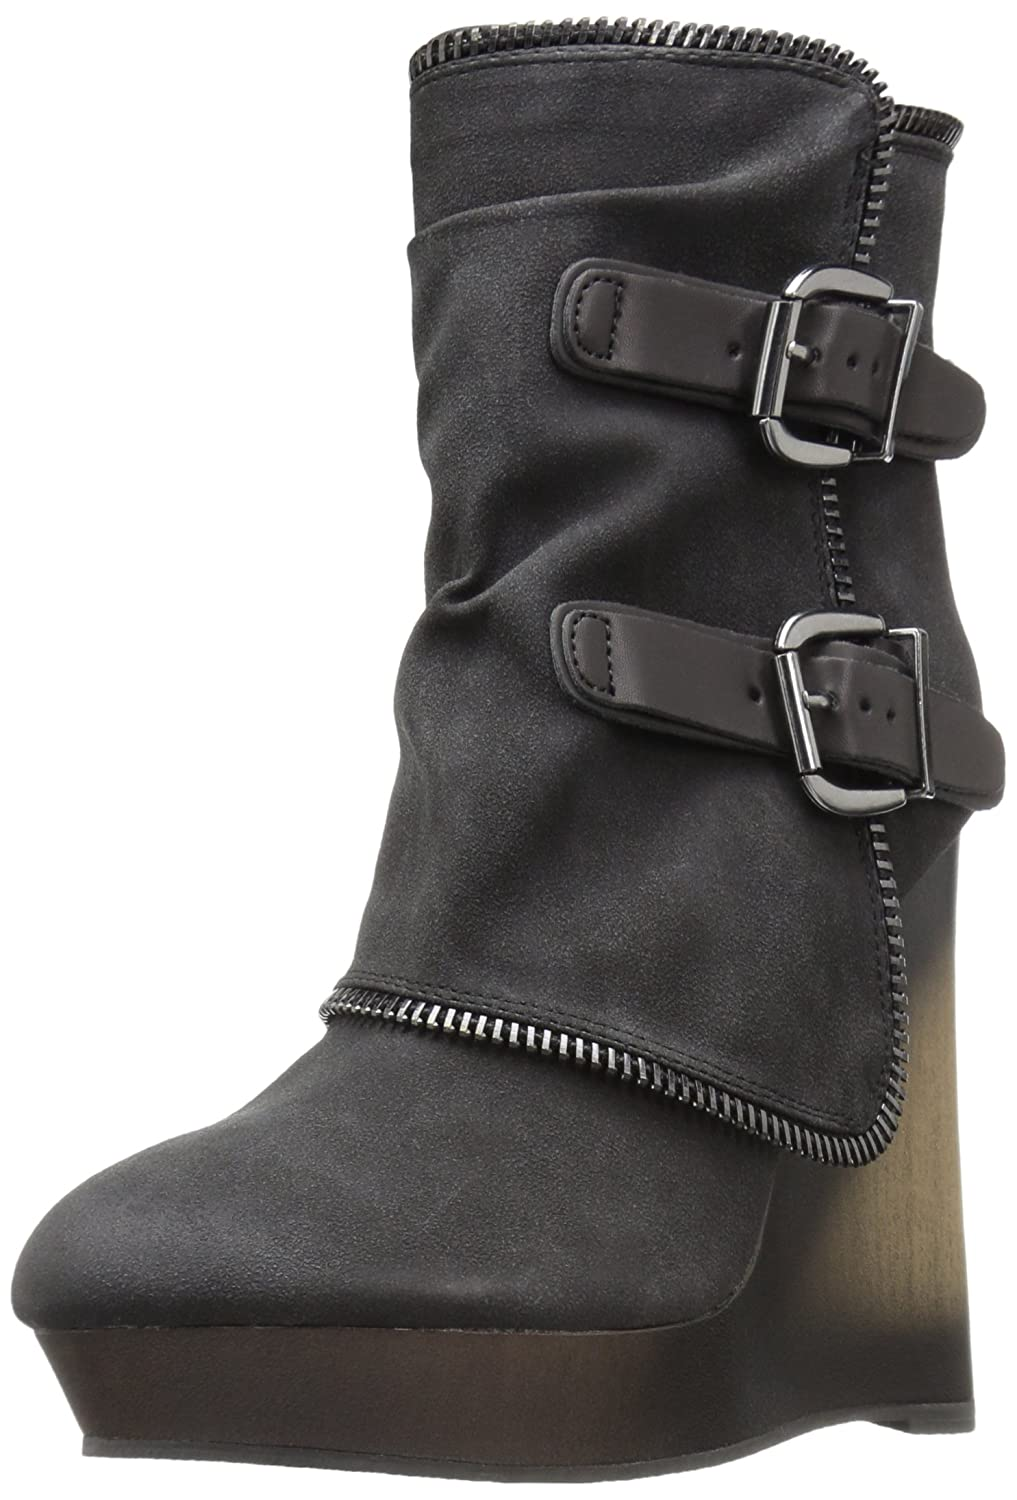 Not Rated Women's Gemini Ankle Bootie B01F6C2ZCW 7 B(M) US|Black